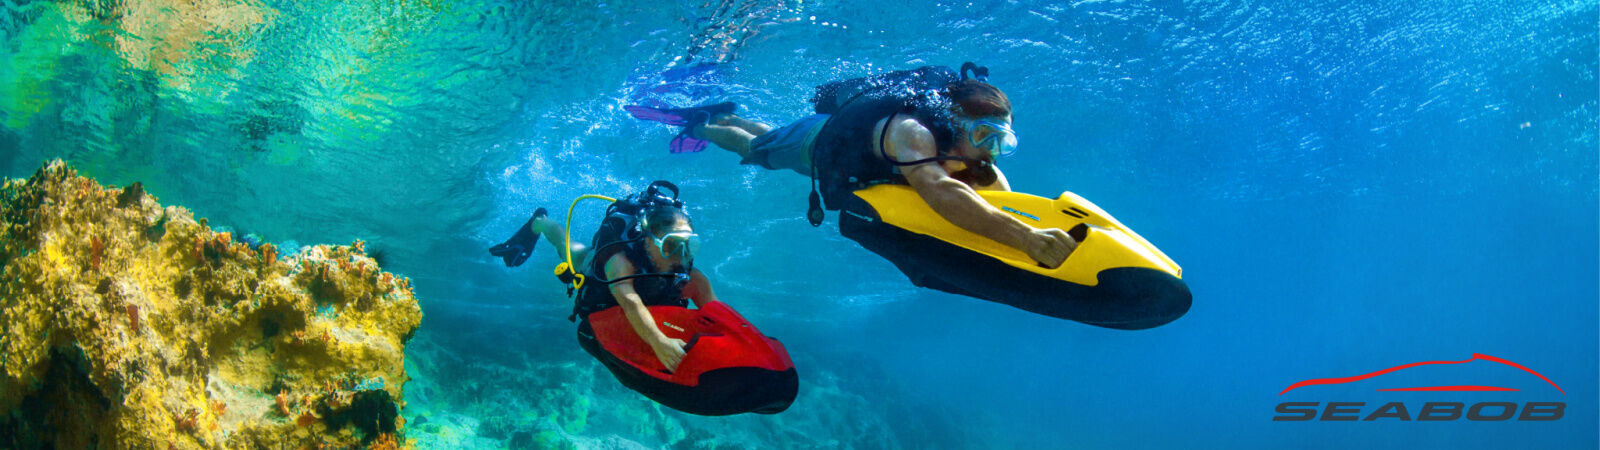 SEABOB Underwater Jet, Water Scooter, Water Sled